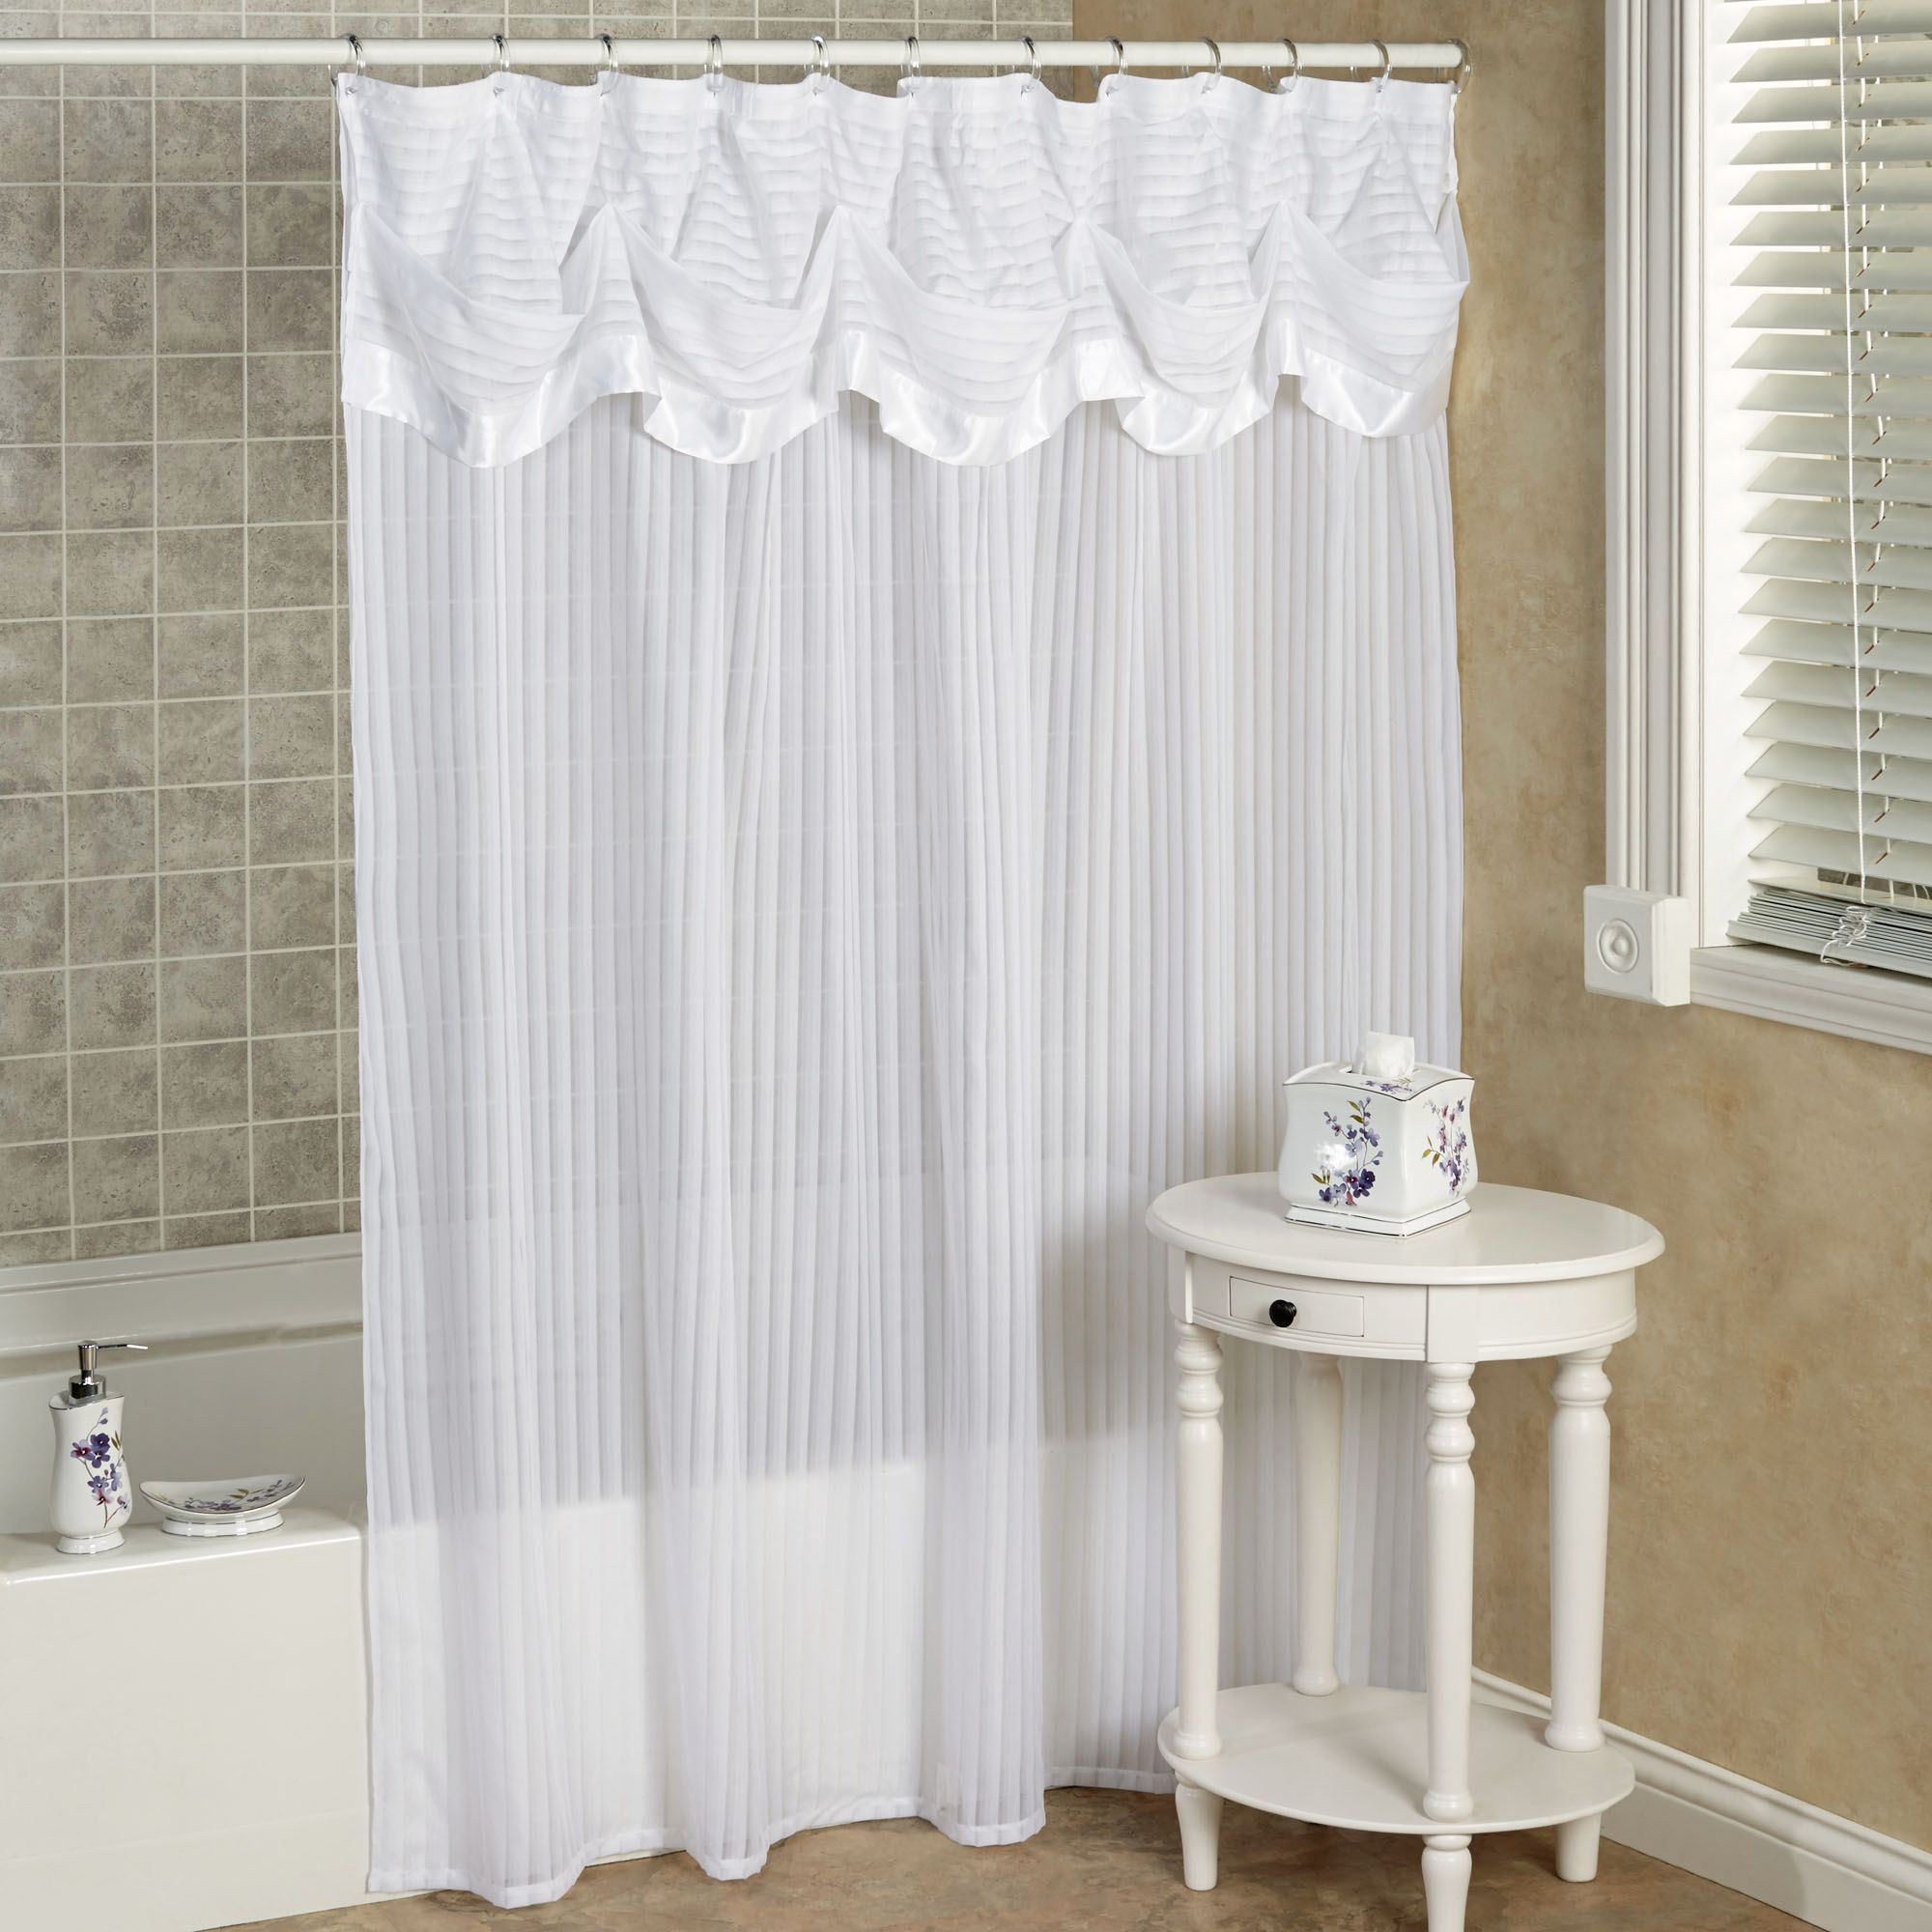 Kitchen Curtain And Blinds Kitchen Curtain Awning Kitchen Curtain Argos Kitchen Curtain Above: Nimbus Stripe Shower Curtain With Attached Valance